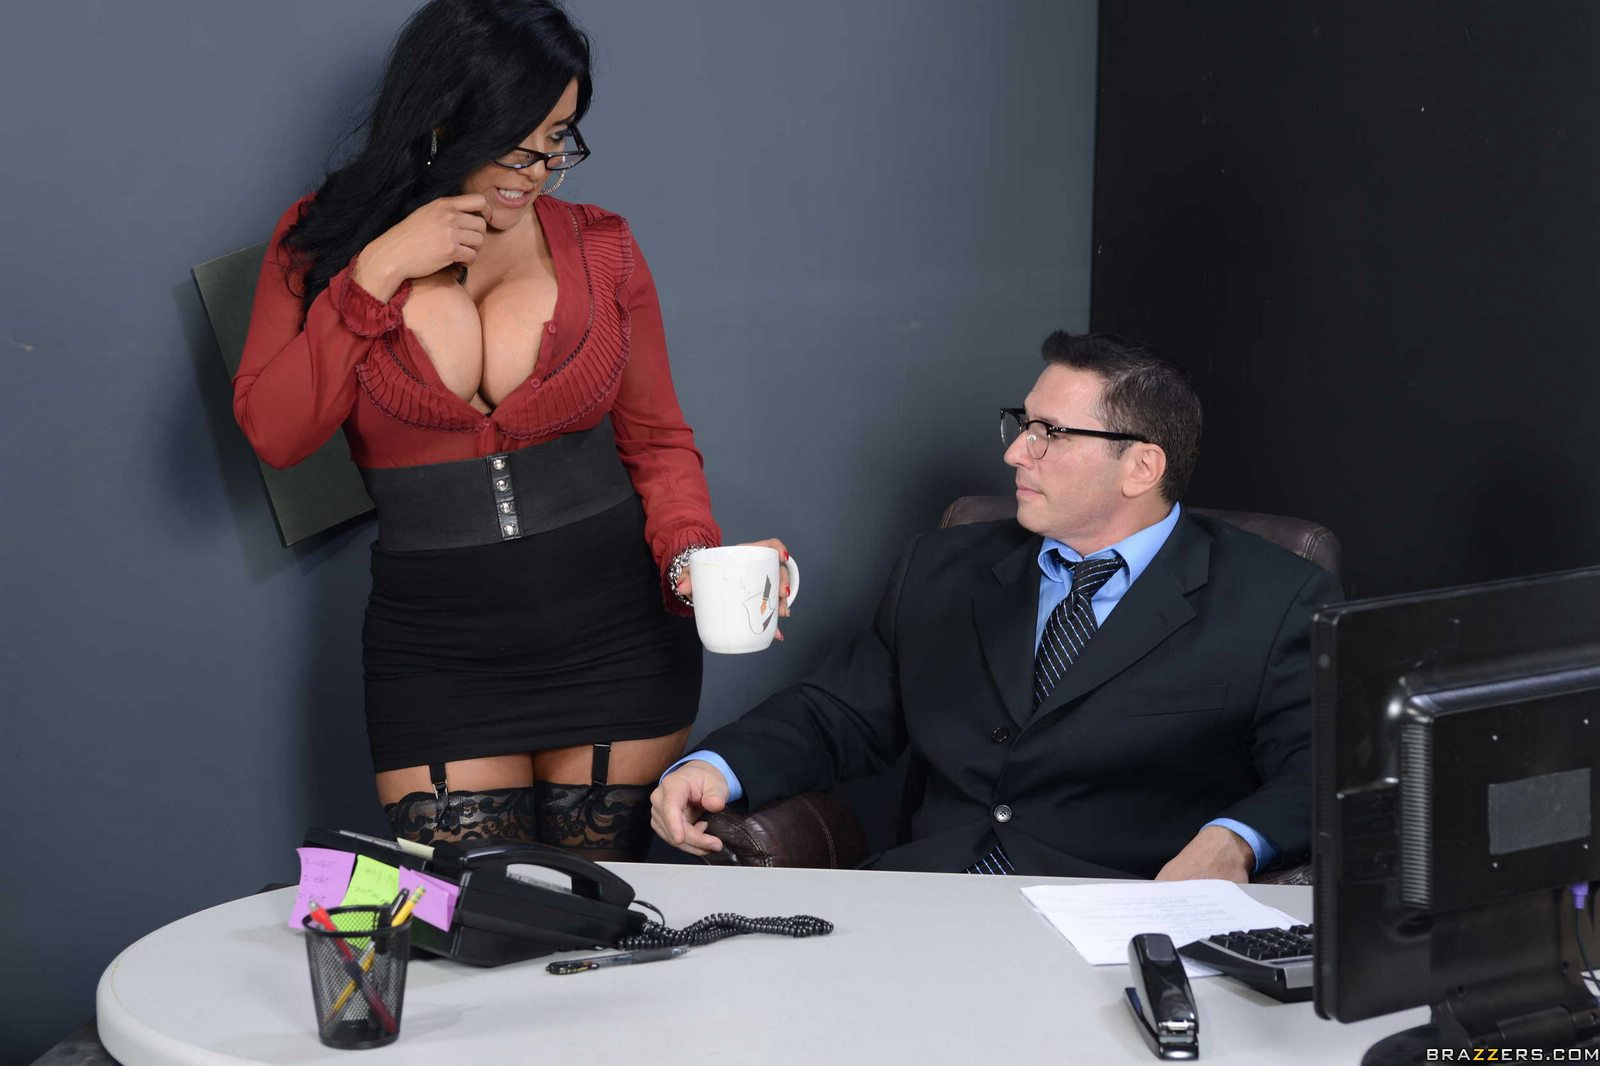 Secretary masturbating in her office while others working - 1 part 5